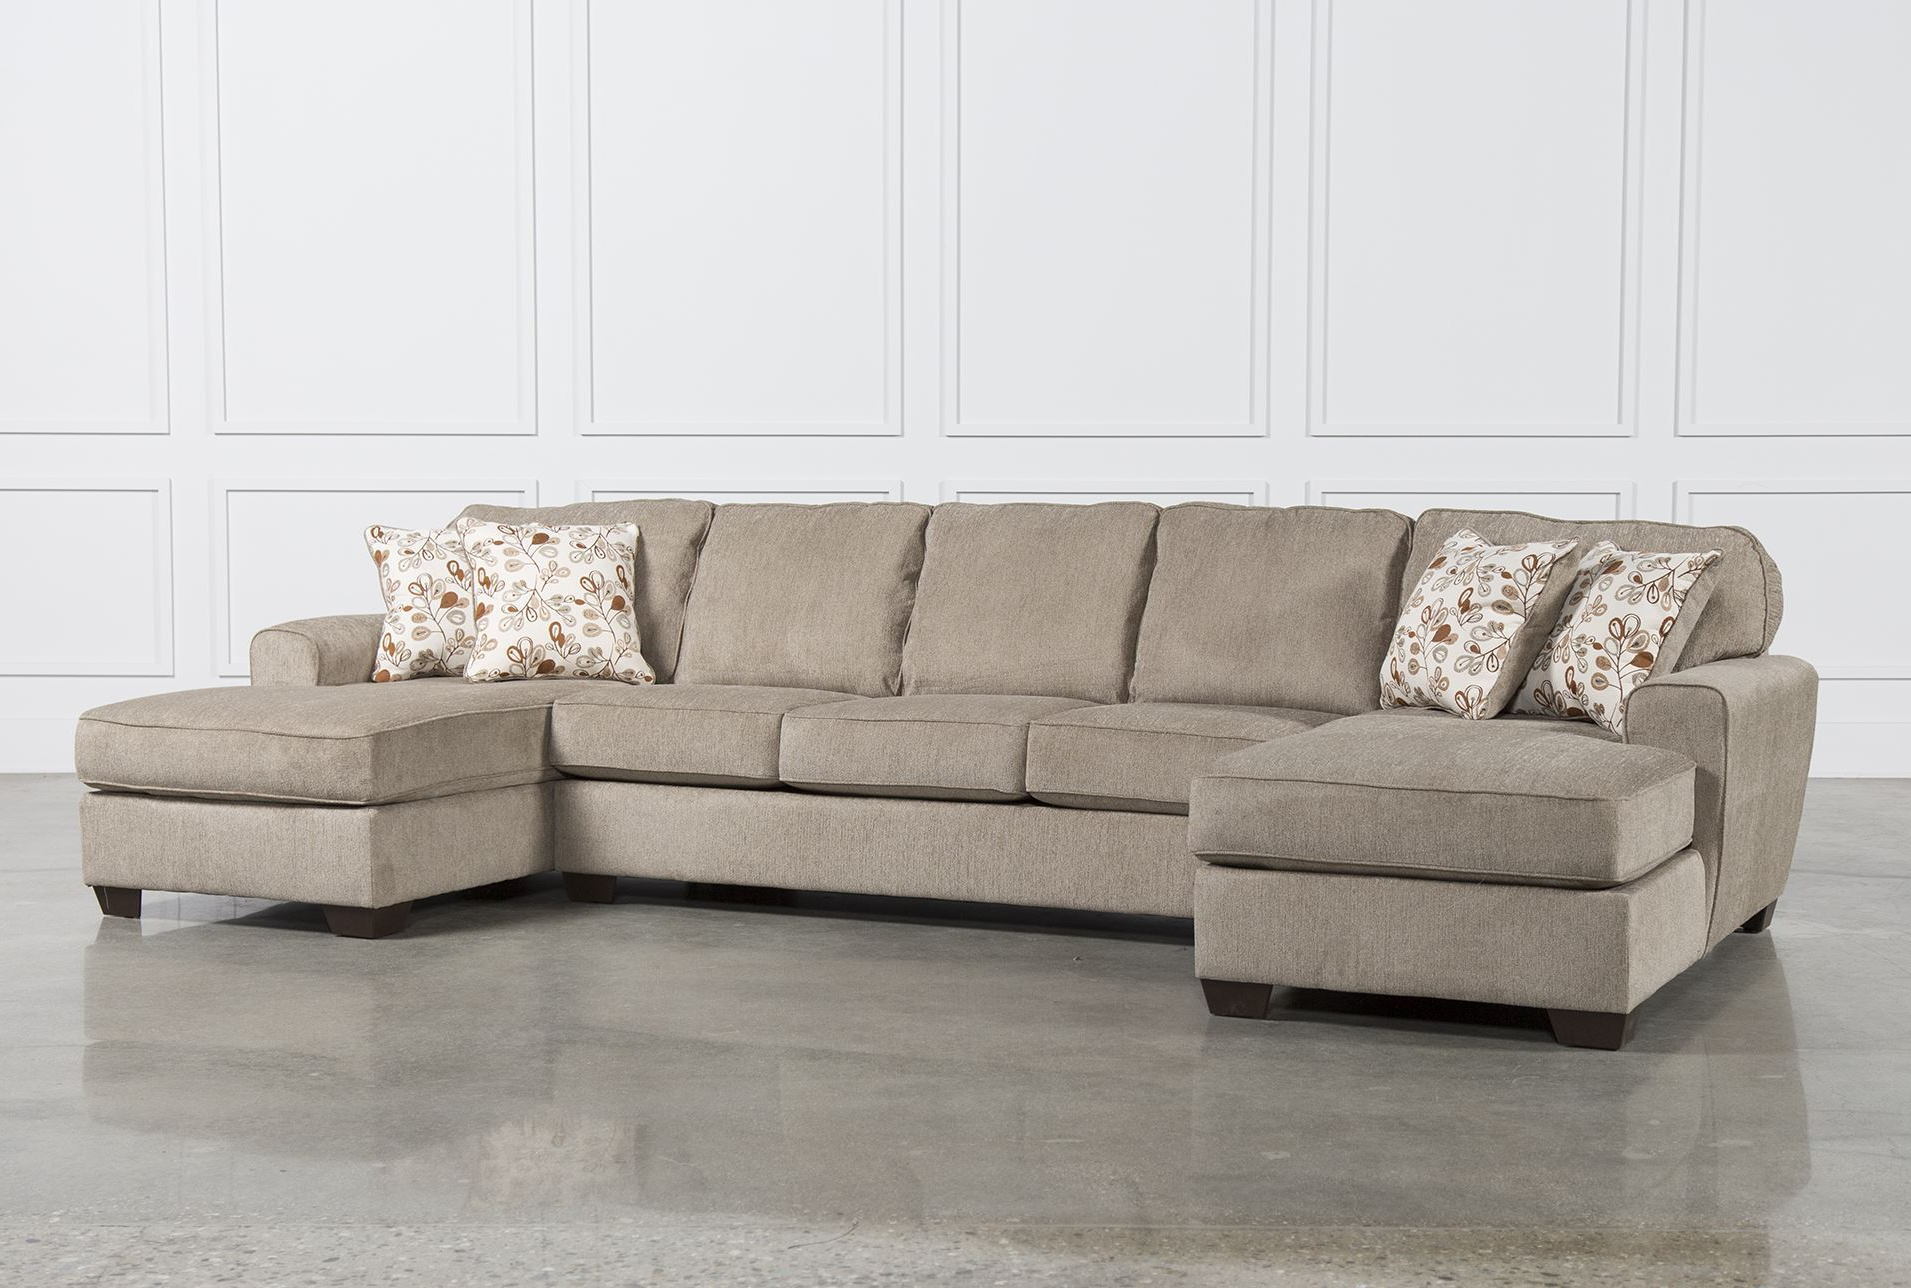 Living Spaces Small Sectional Sofas – Sofa Design Ideas Throughout 2019 Avery 2 Piece Sectionals With Laf Armless Chaise (View 13 of 20)